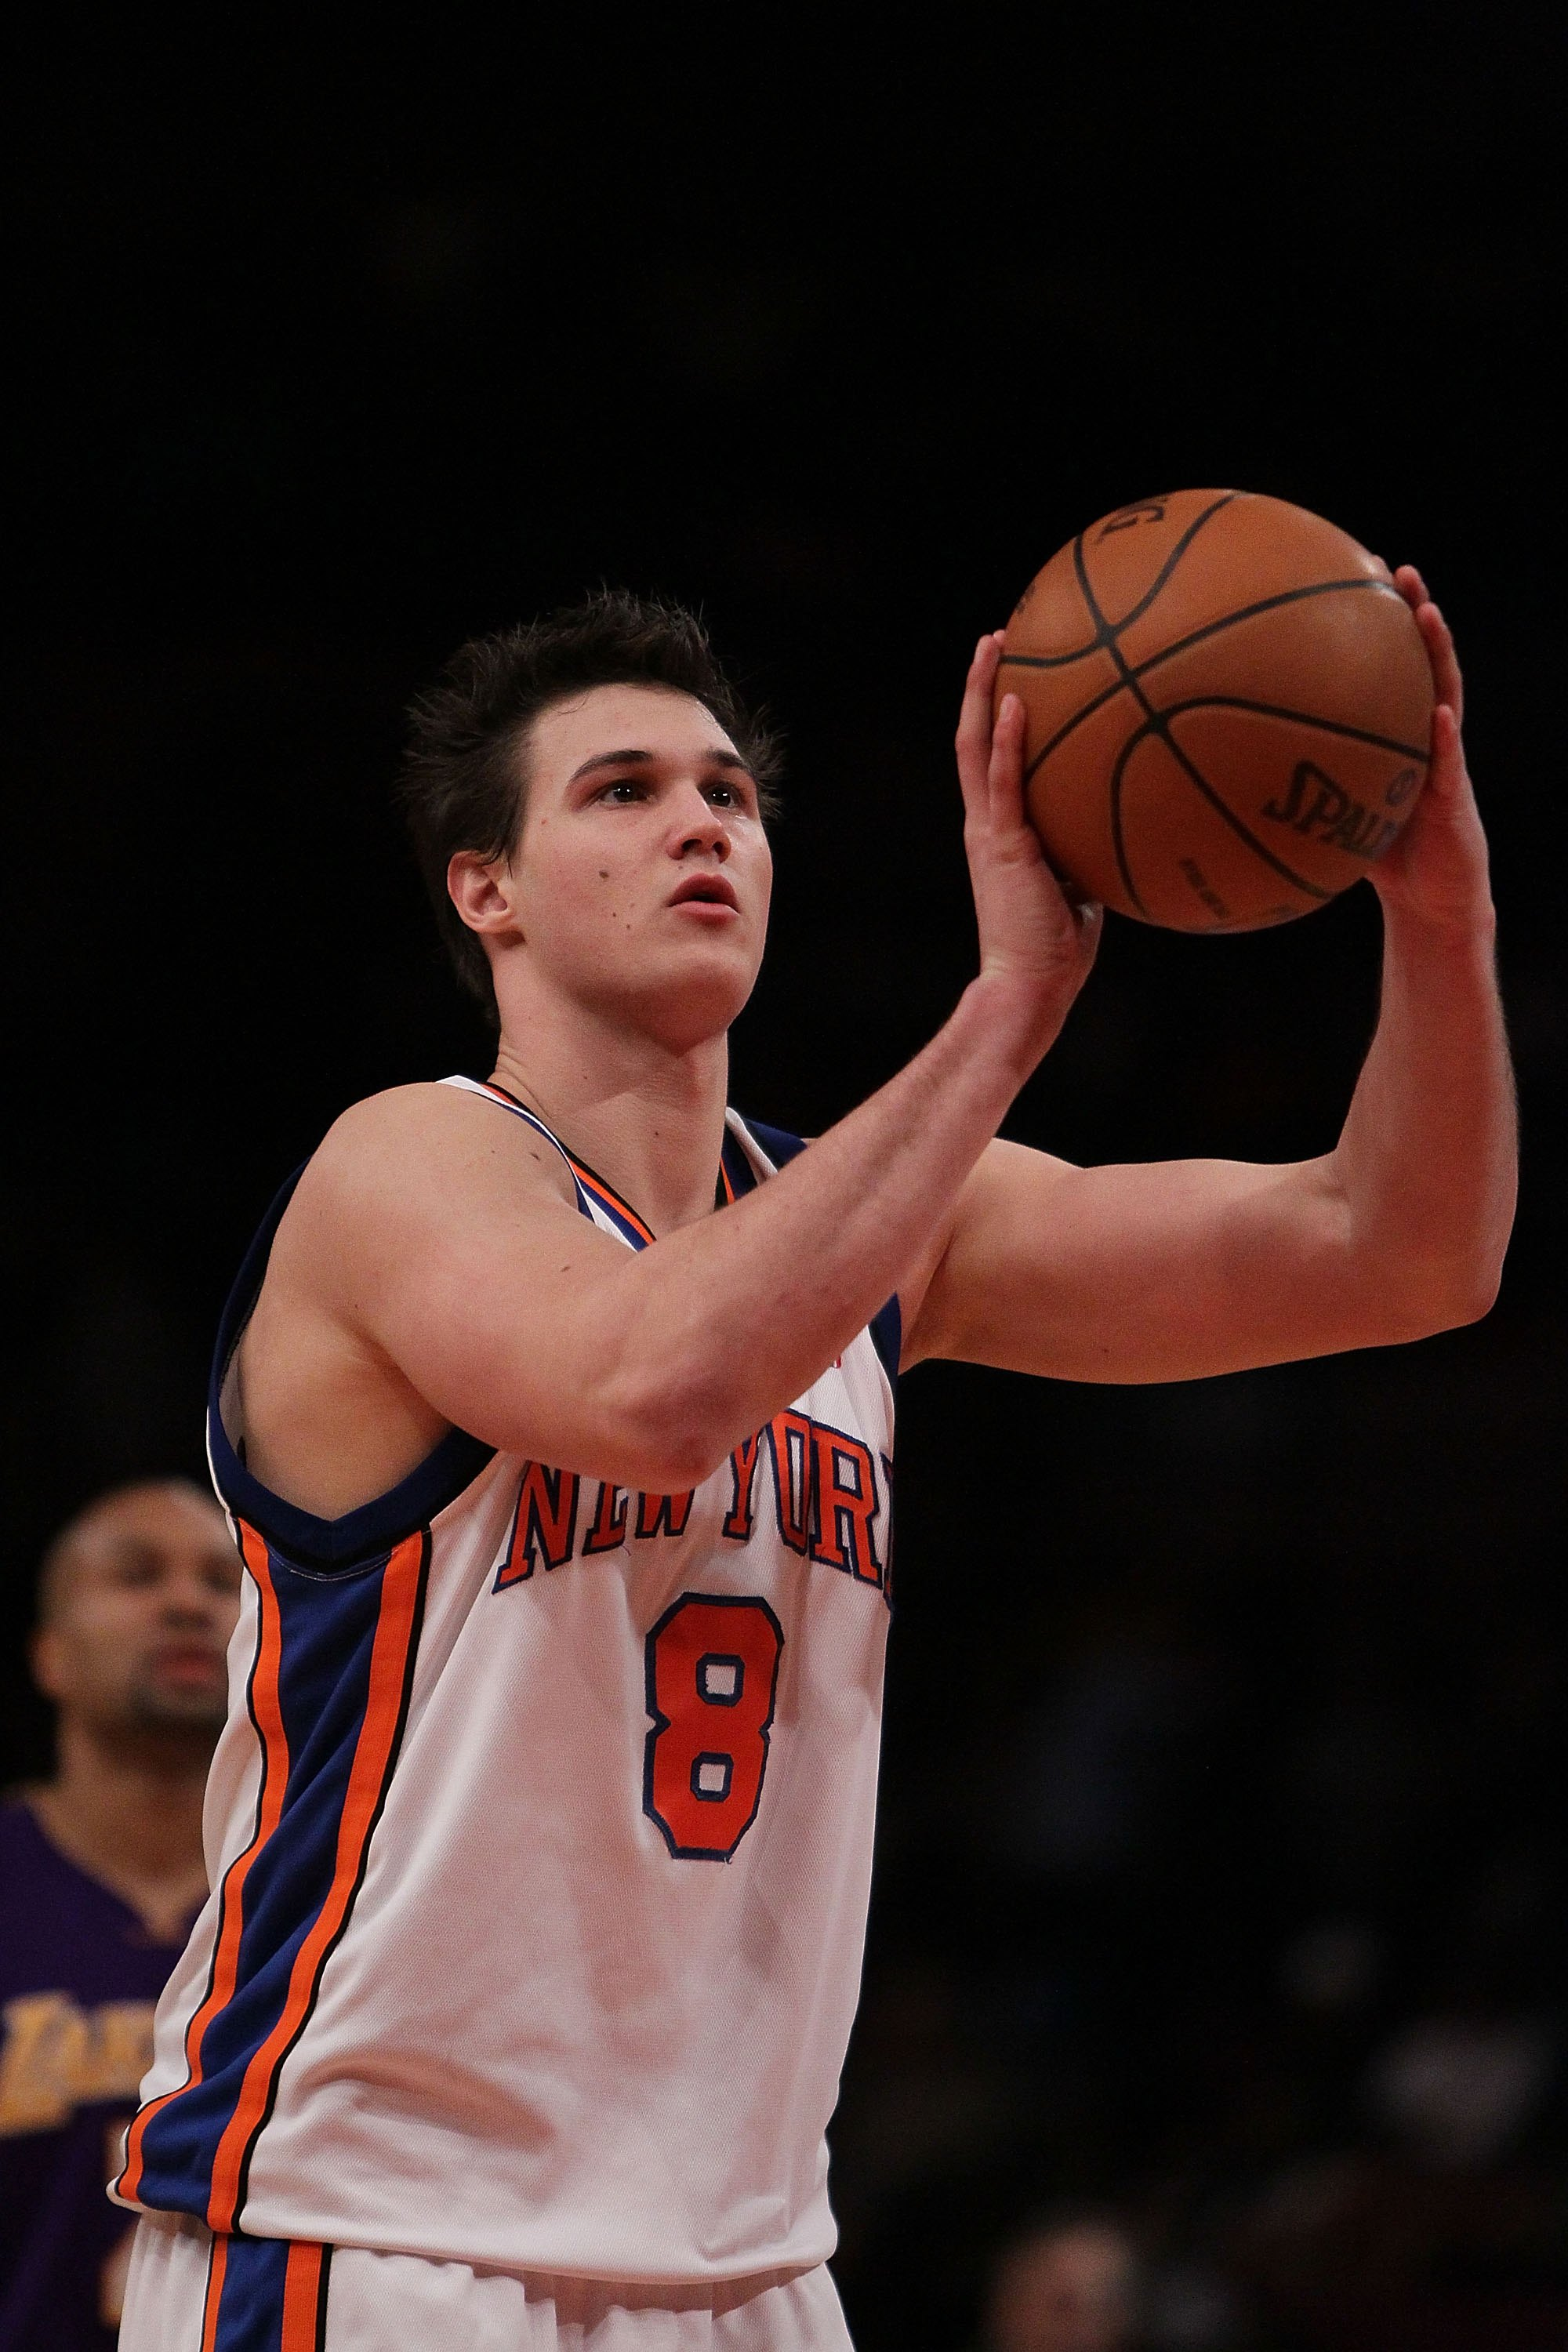 NEW YORK - JANUARY 22:  Danilo Gallinari #8 of the New York Knicks in action against the Los Angeles Lakers during their game at Madison Square Garden on January 22, 2010 in New York, New York.  NOTE TO USER: User expressly acknowledges and agrees that, b